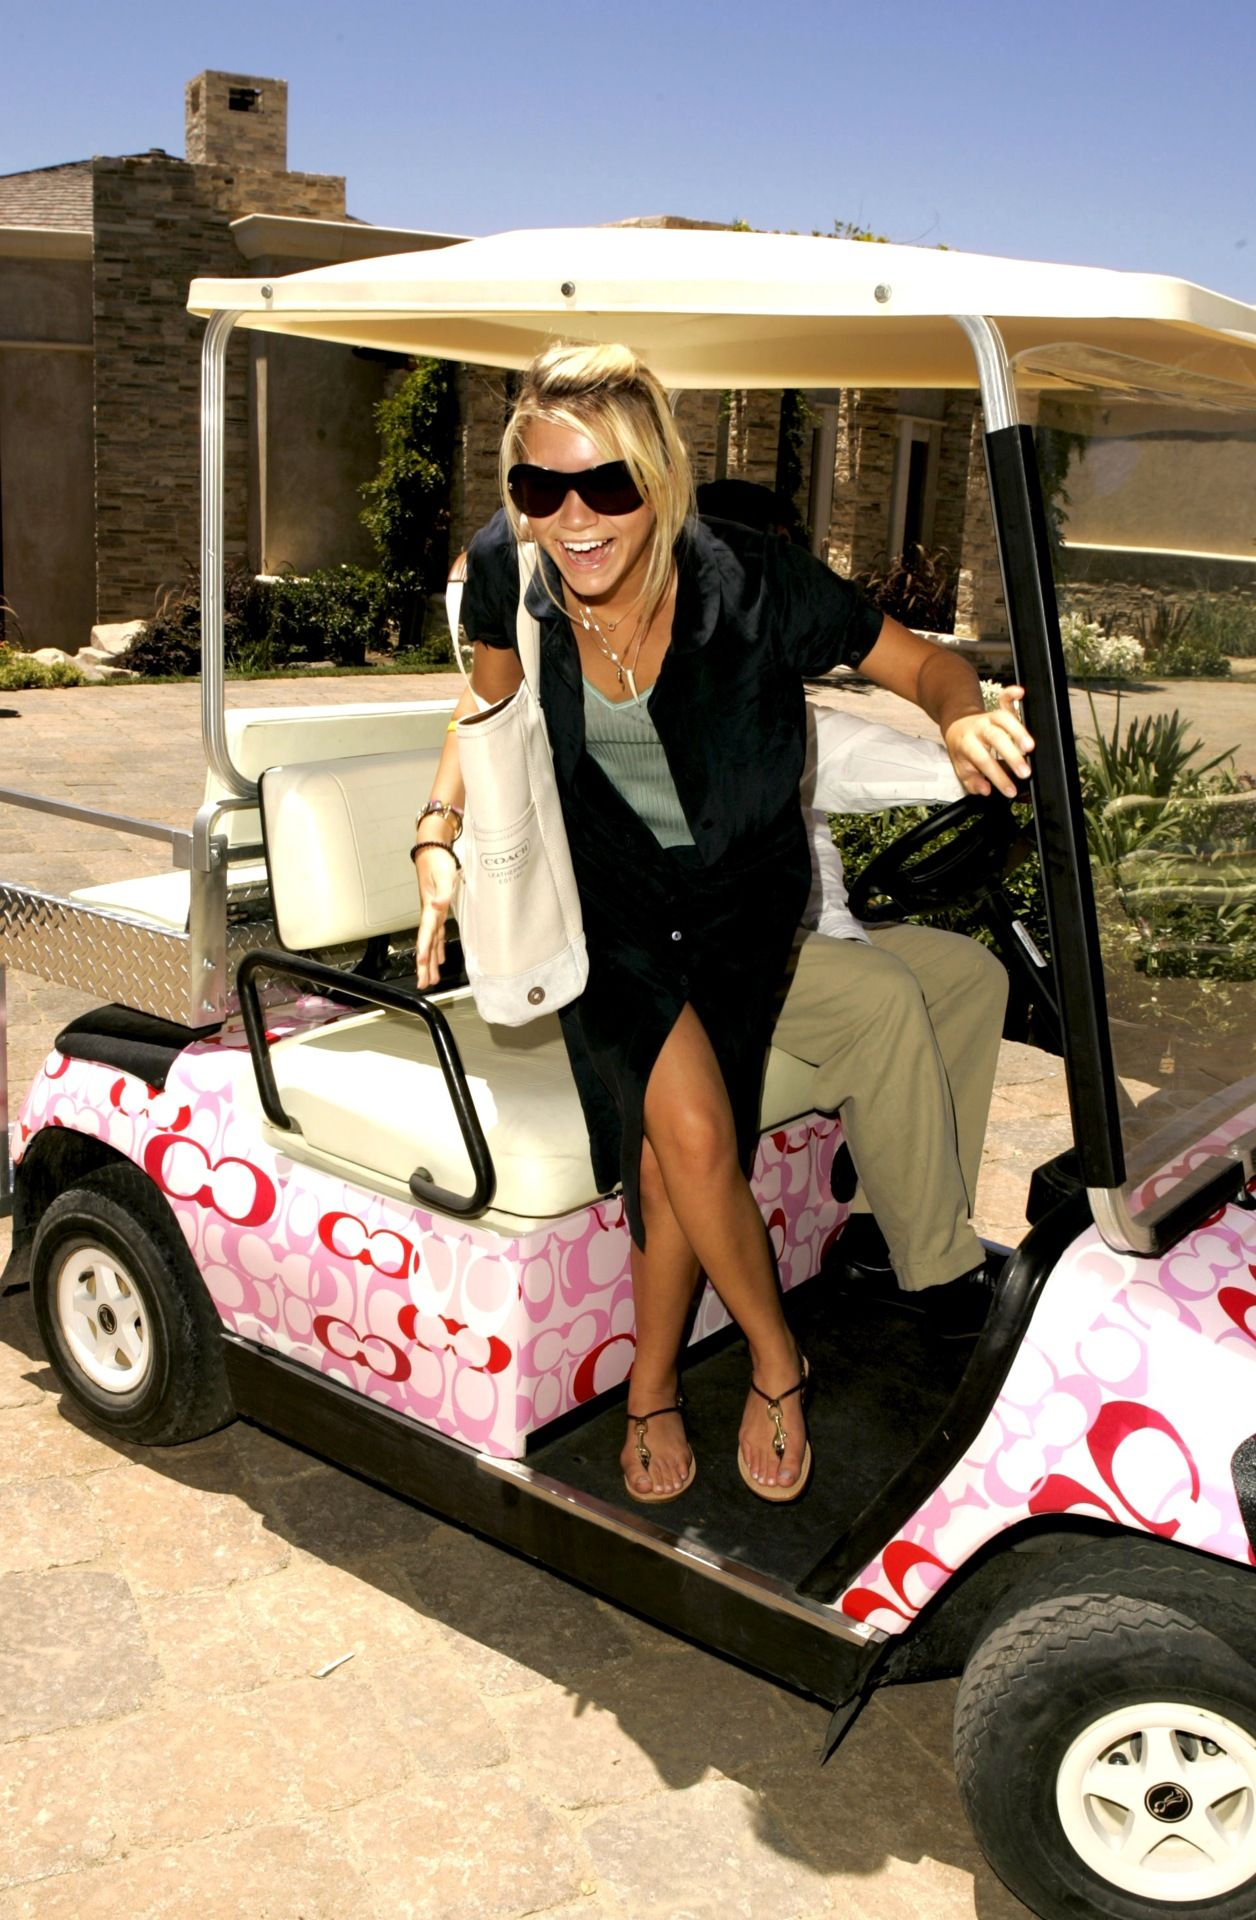 flirting moves that work golf cart cover for a car